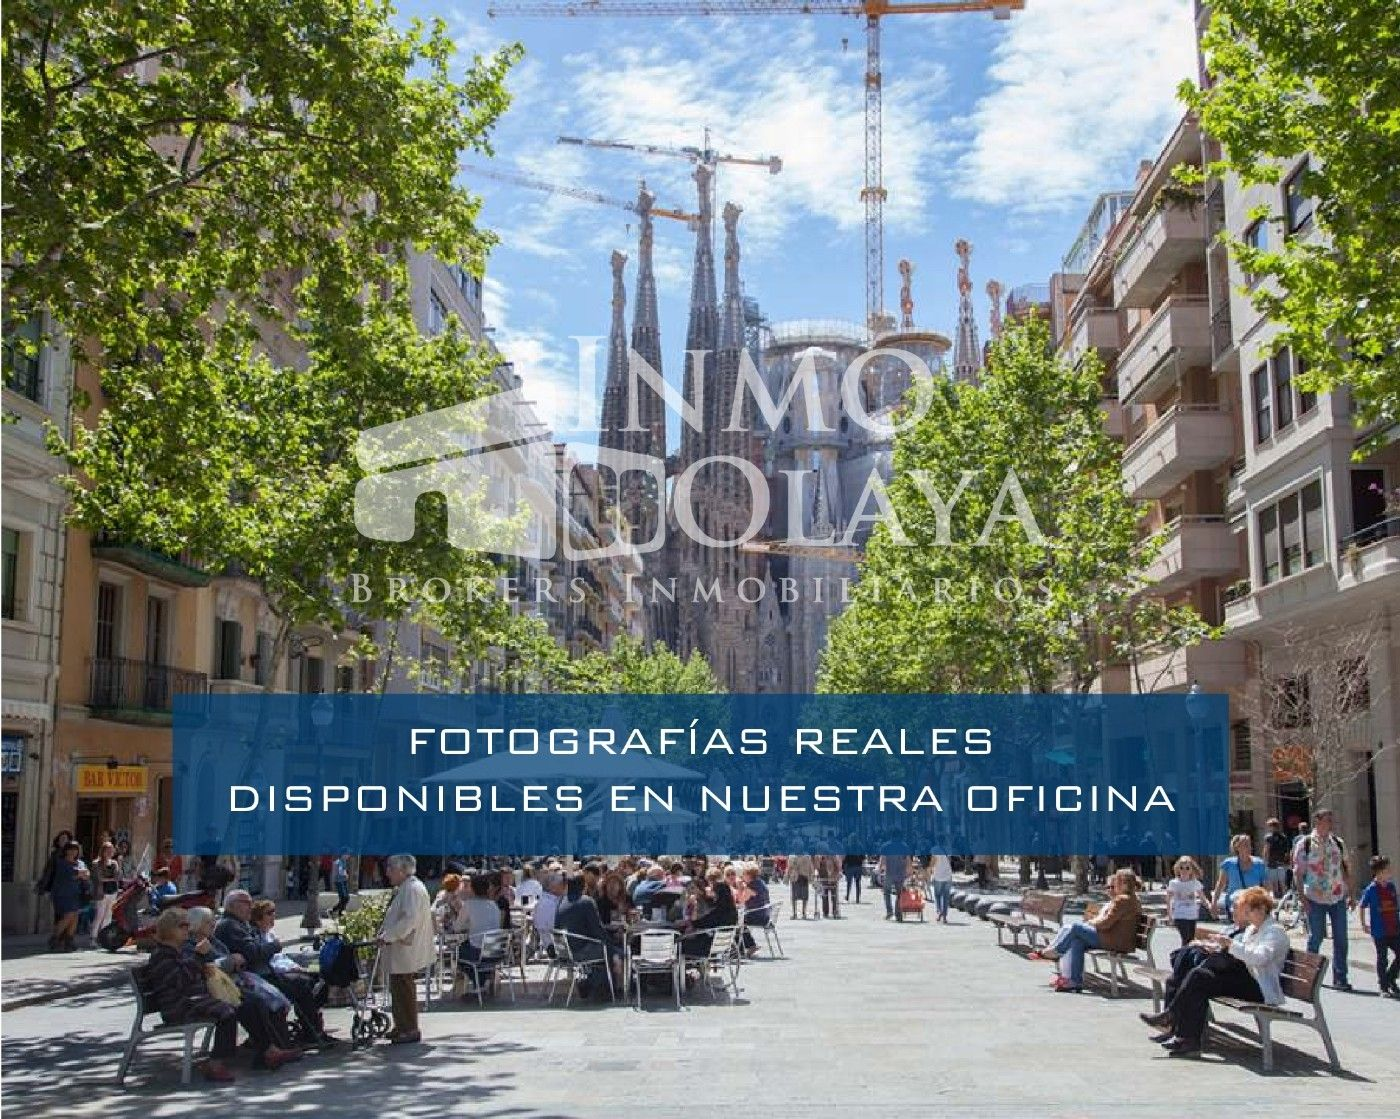 Pas-de-porte Local commercial  Sagrada familia. Take away con salida de humos